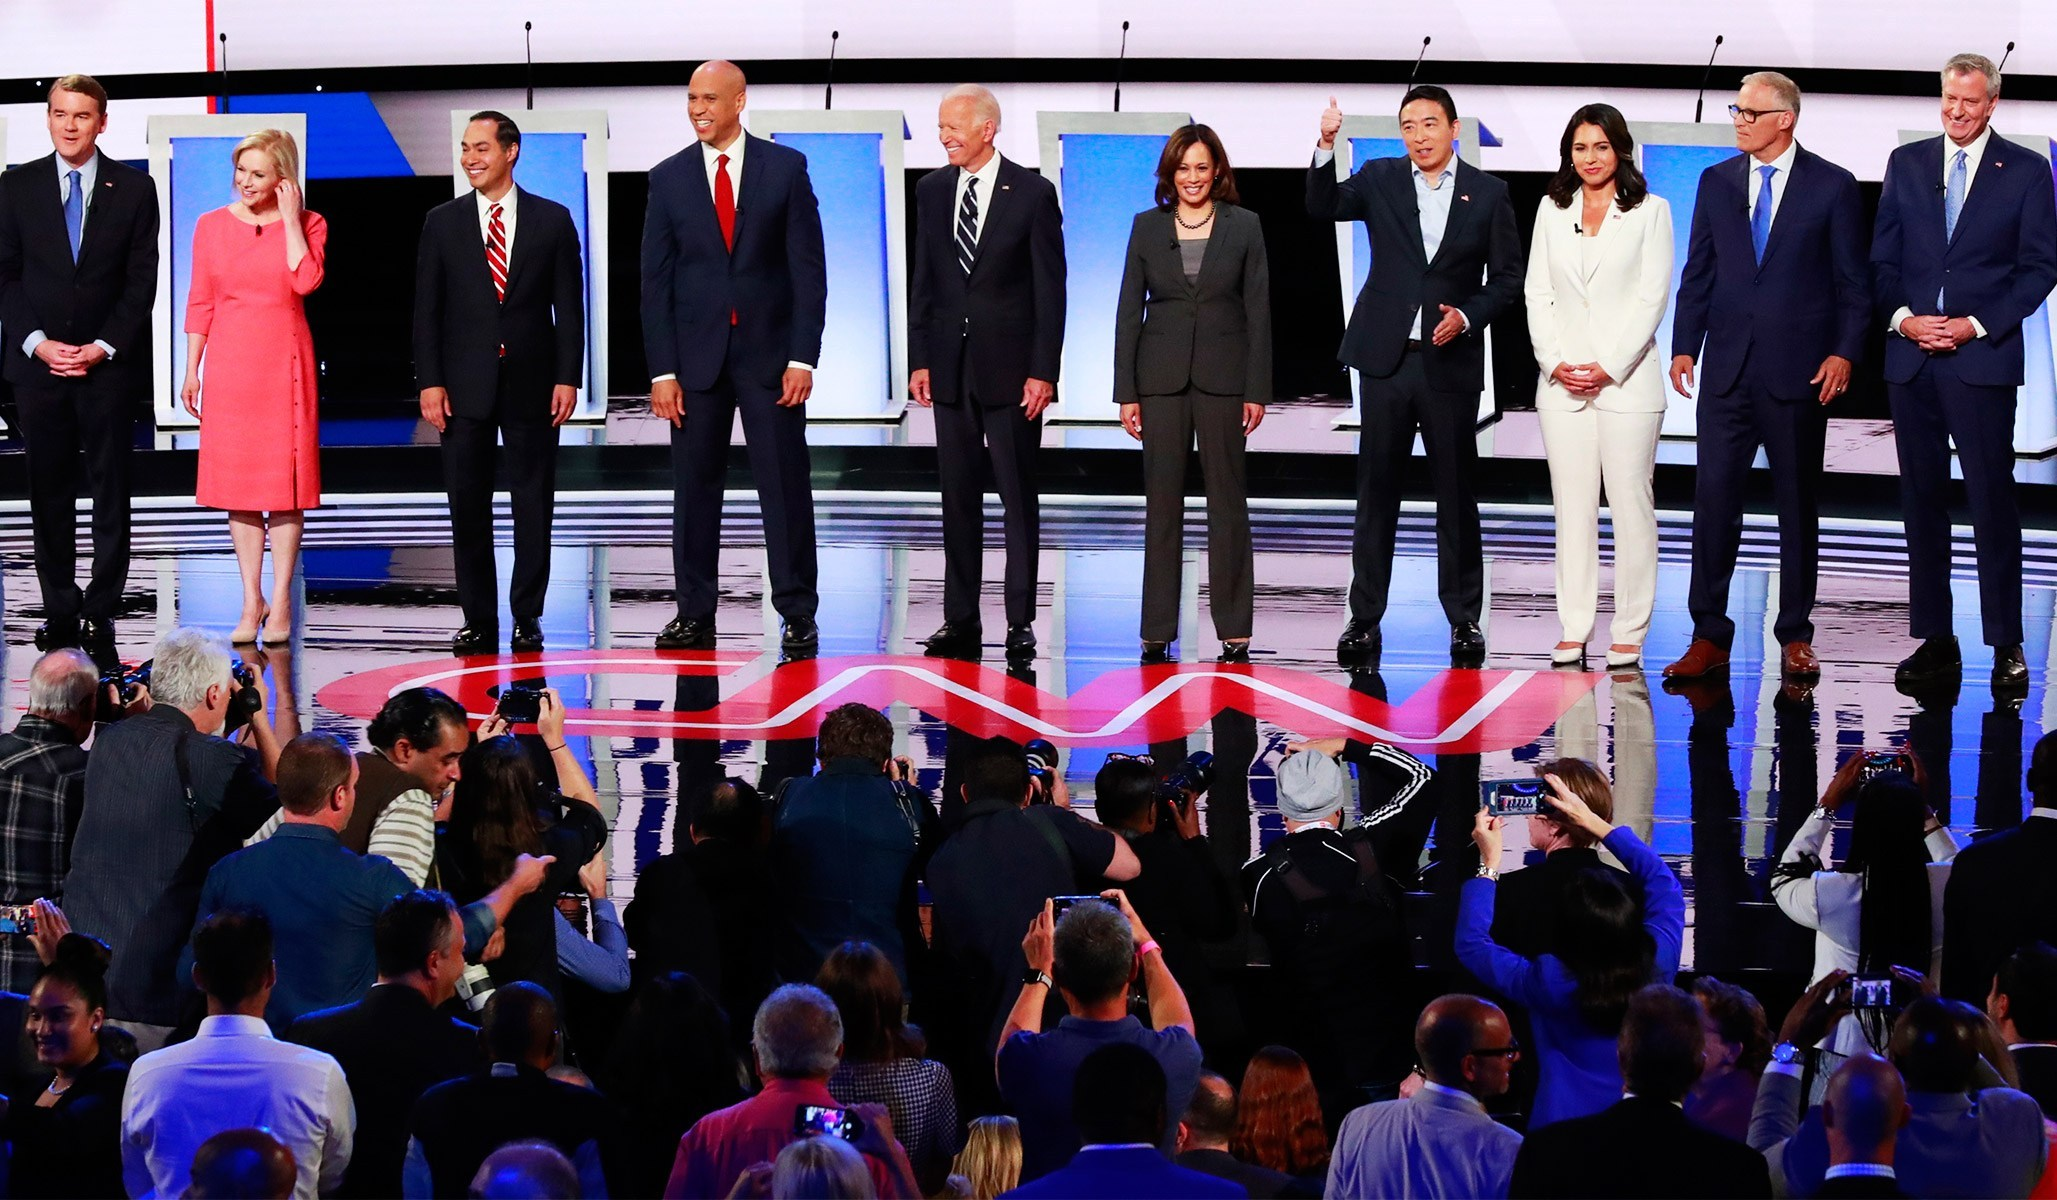 Democratic Debate Debrief Round 2: Biden Bombed and Harris